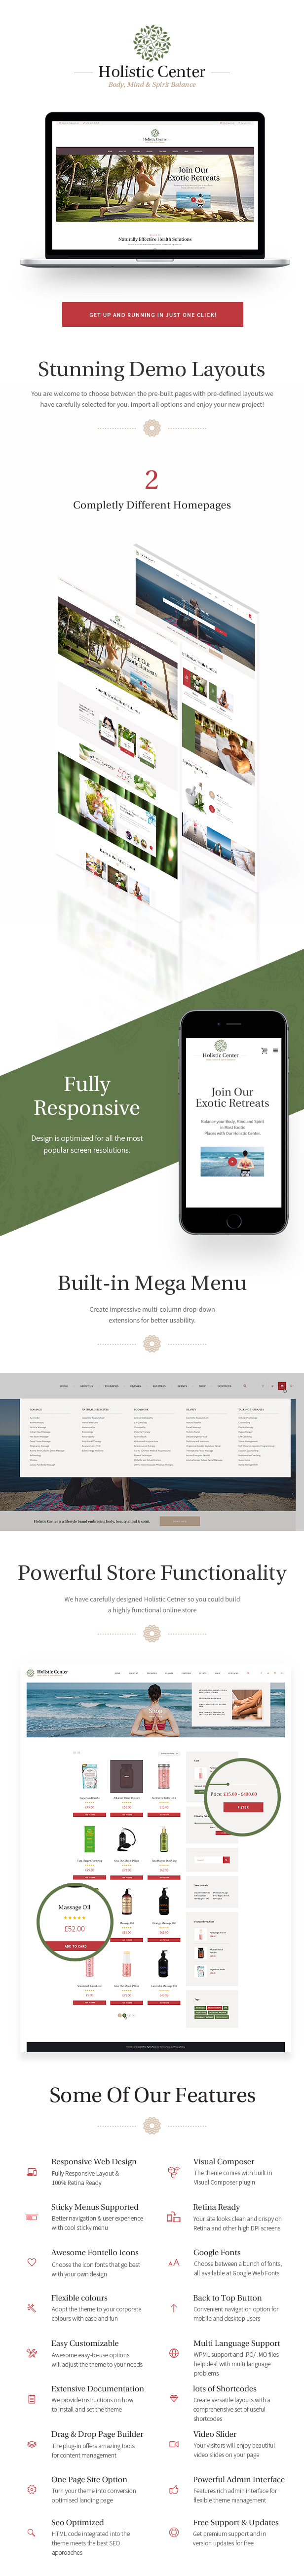 Holistic Center - Wellness and Spa WordPress Theme features